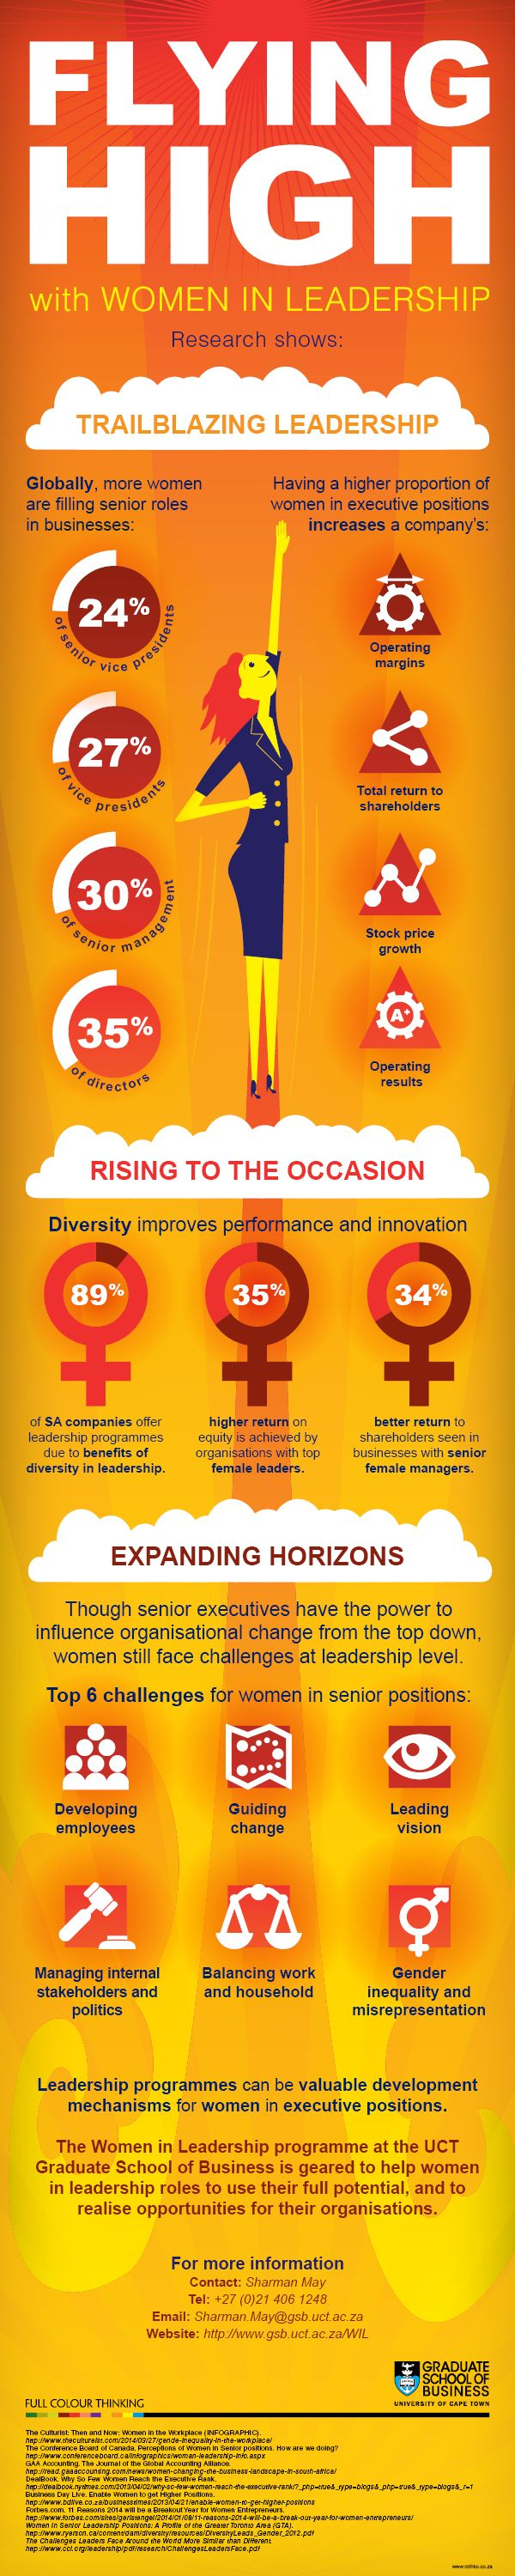 Flying High! Our infographic for the University of Cape Town Graduate School of Business Women in Leadership Programme.